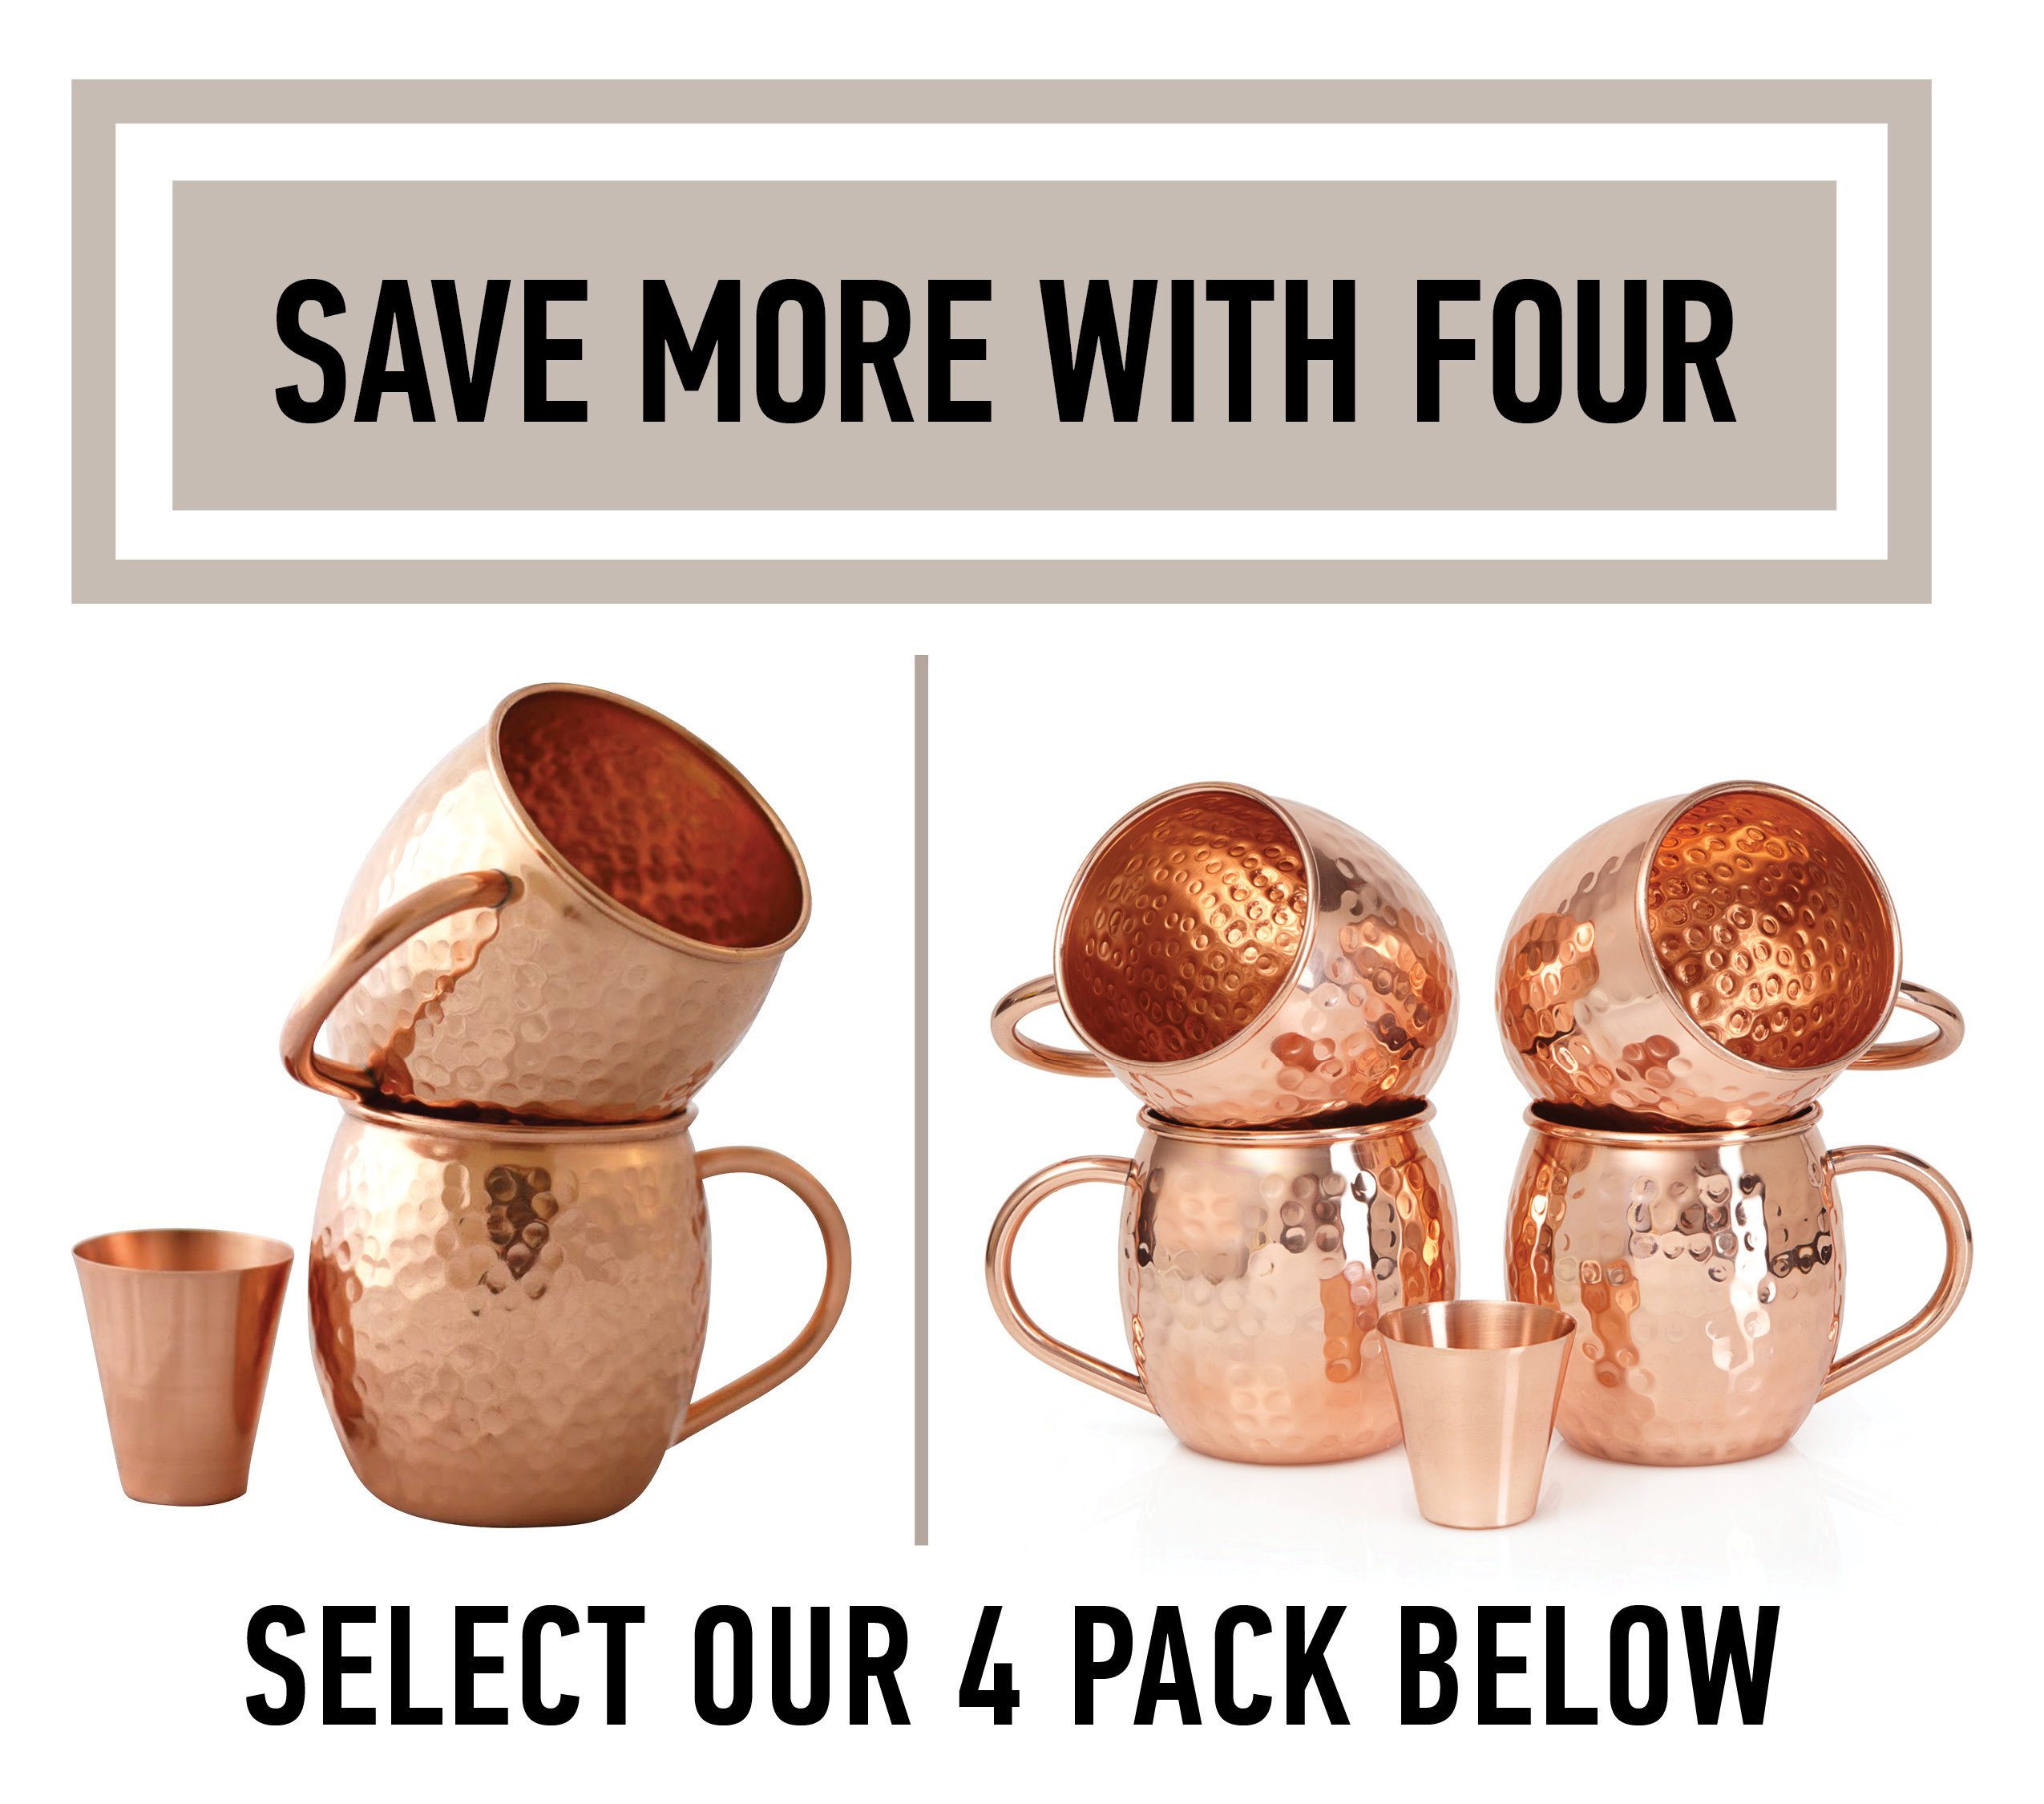 Set of 2 Moscow Mule Copper Mugs with Shot Glass - Two 16 Oz Copper Moscow Mule Mugs - Solid Copper Hammered Mug - Copper Cups for Moscow Mules by Willow & Everett (Image #2)